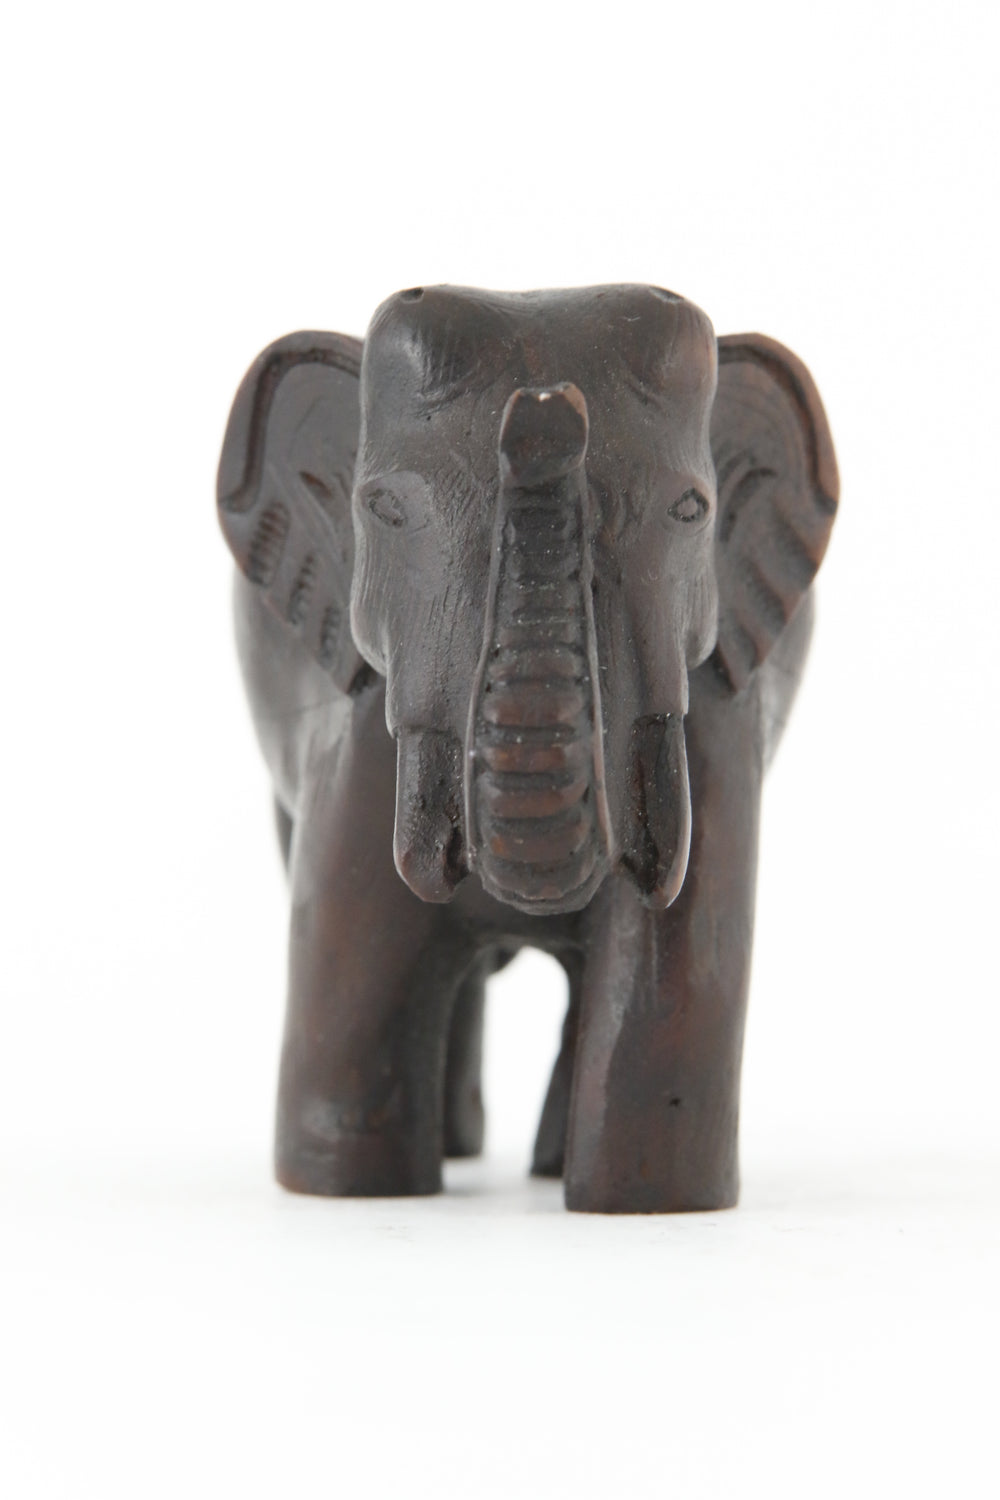 ELEPHANT WALKING STATUE DARK FRONT VIEW